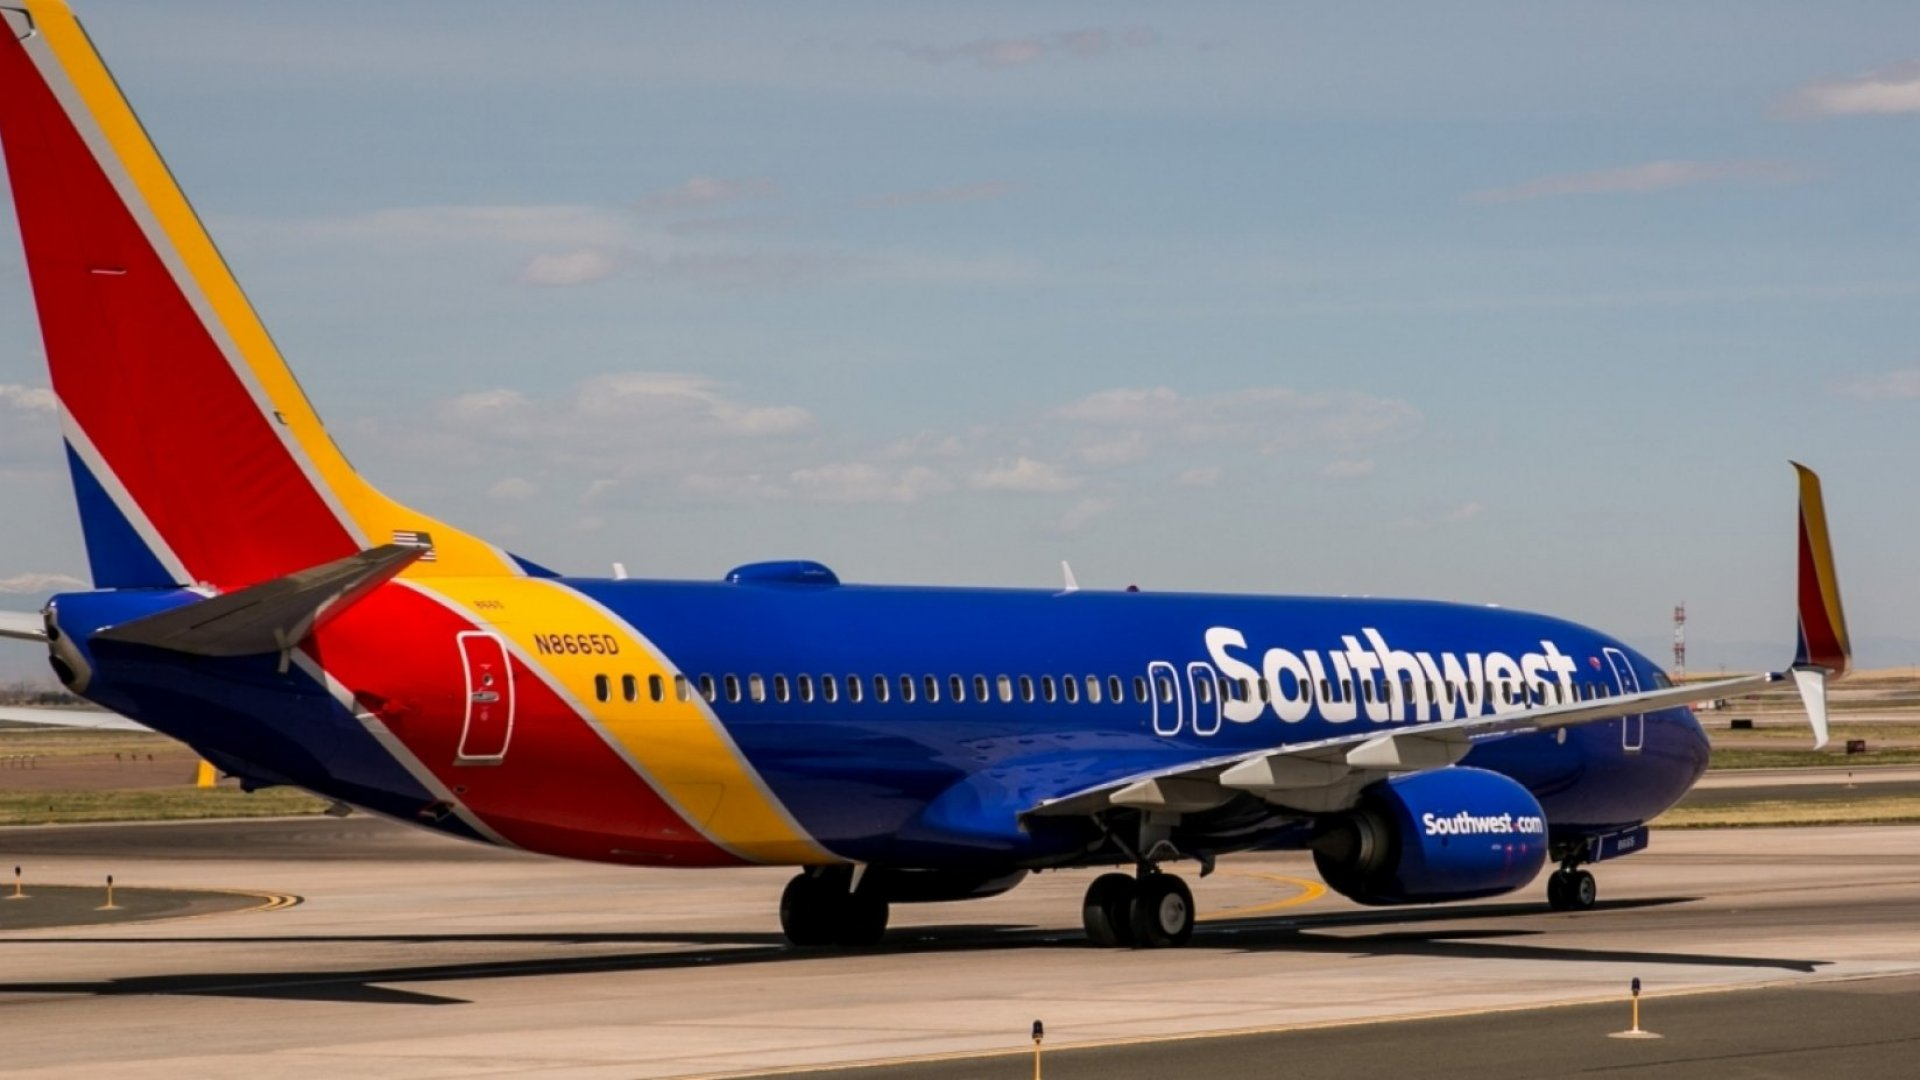 Meet the Southwest Passenger Who Threatened to Put a Southwest Flight Attendant 'In a Body Bag' (Things Only Got Worse From There)